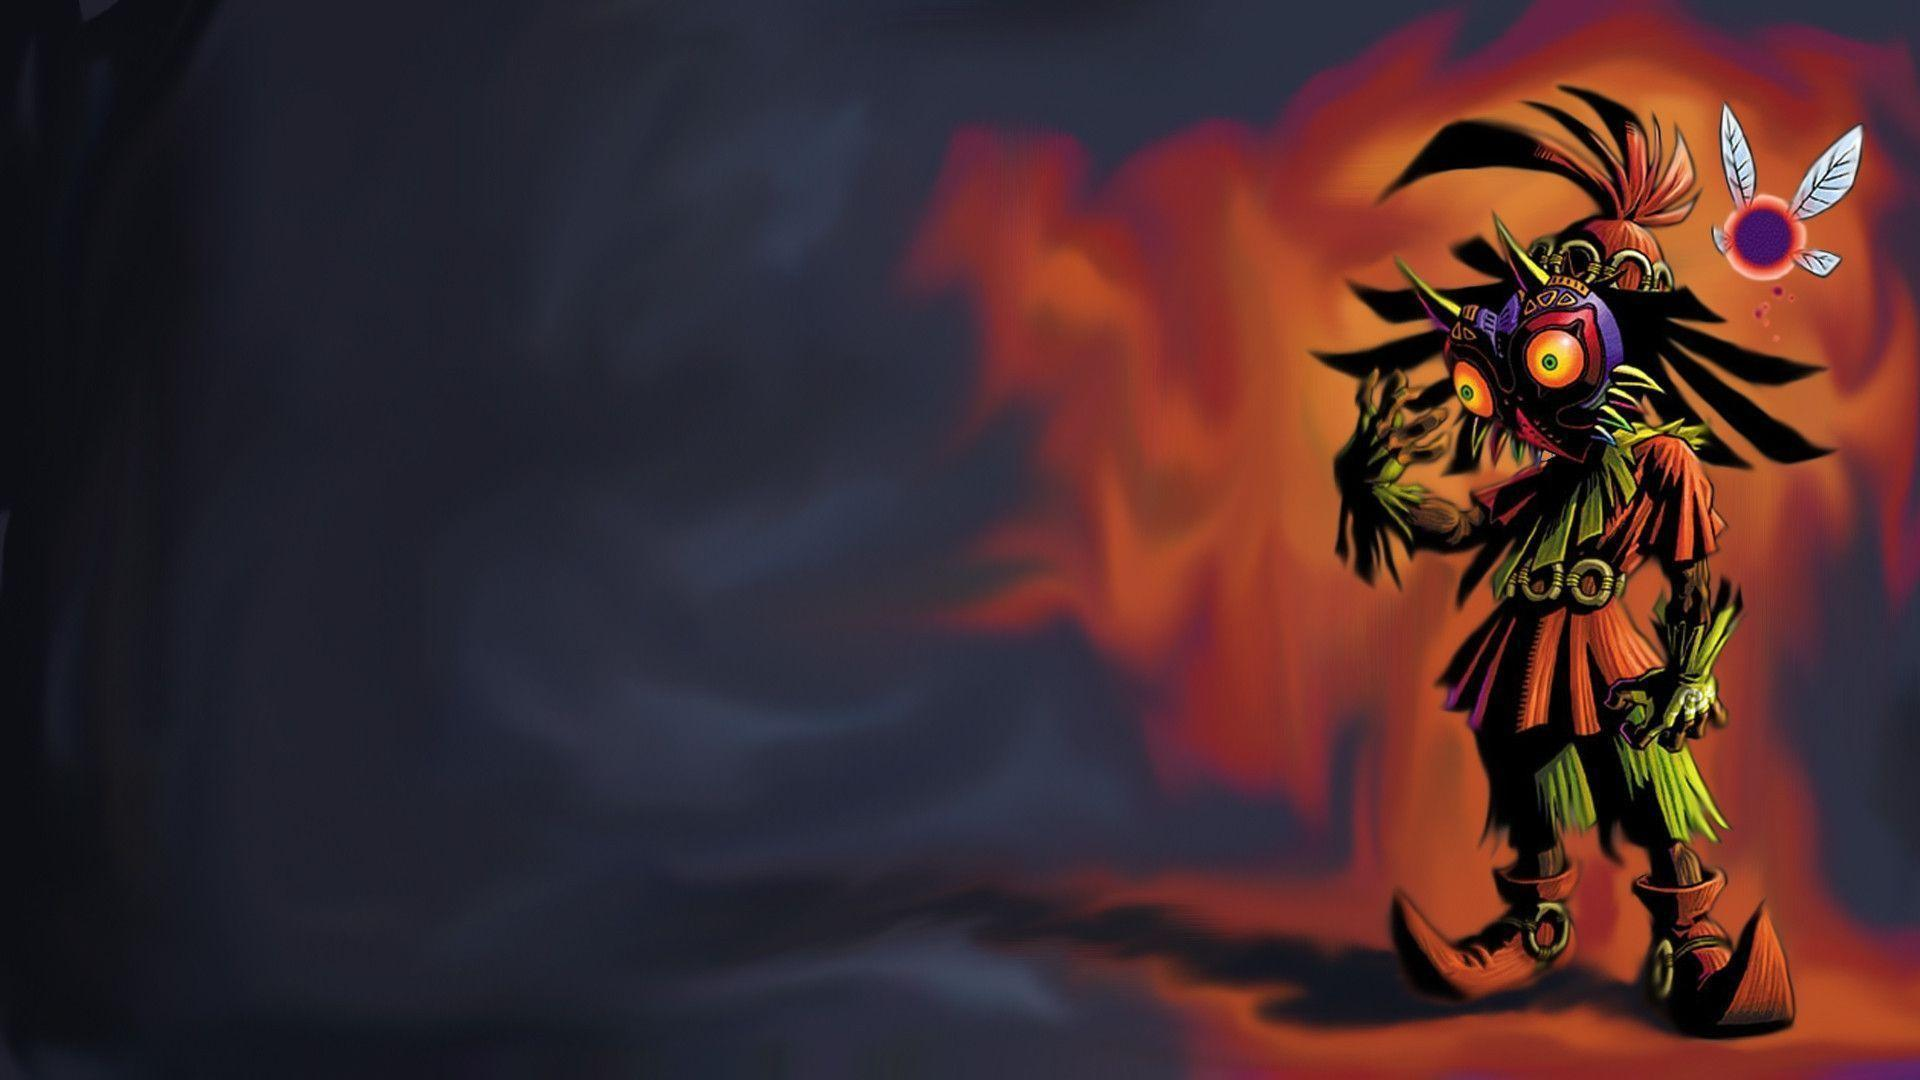 Download Zelda Majoras Mask Nintendo Skull Kid Wallpaper